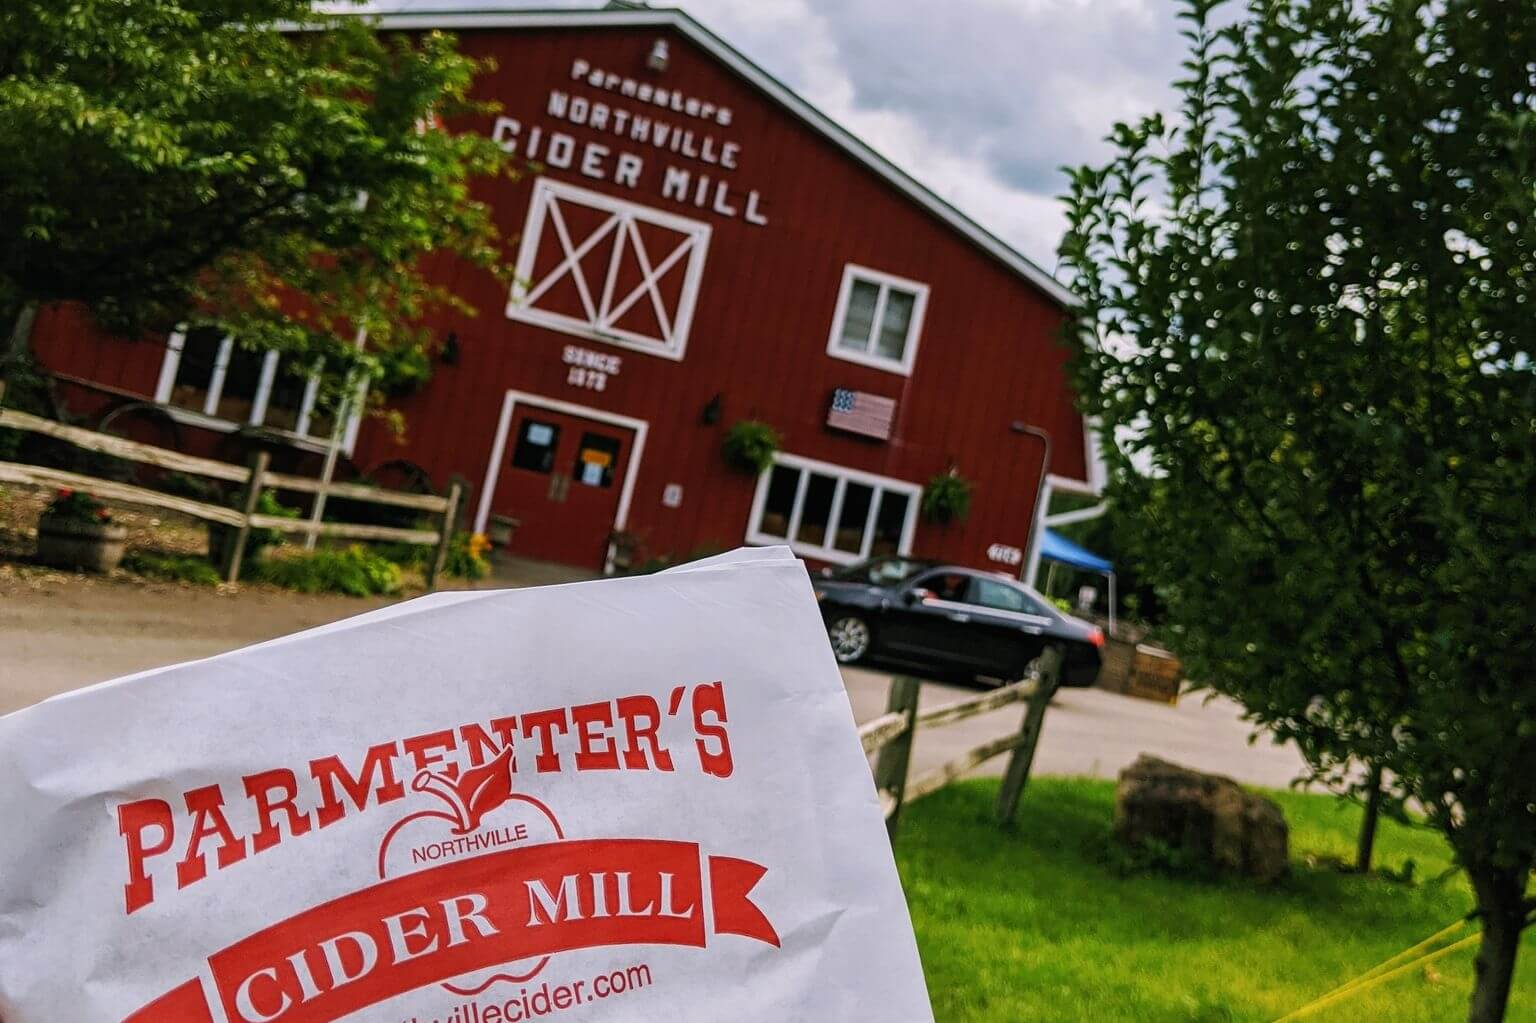 Cider Mills Opening This Weekend